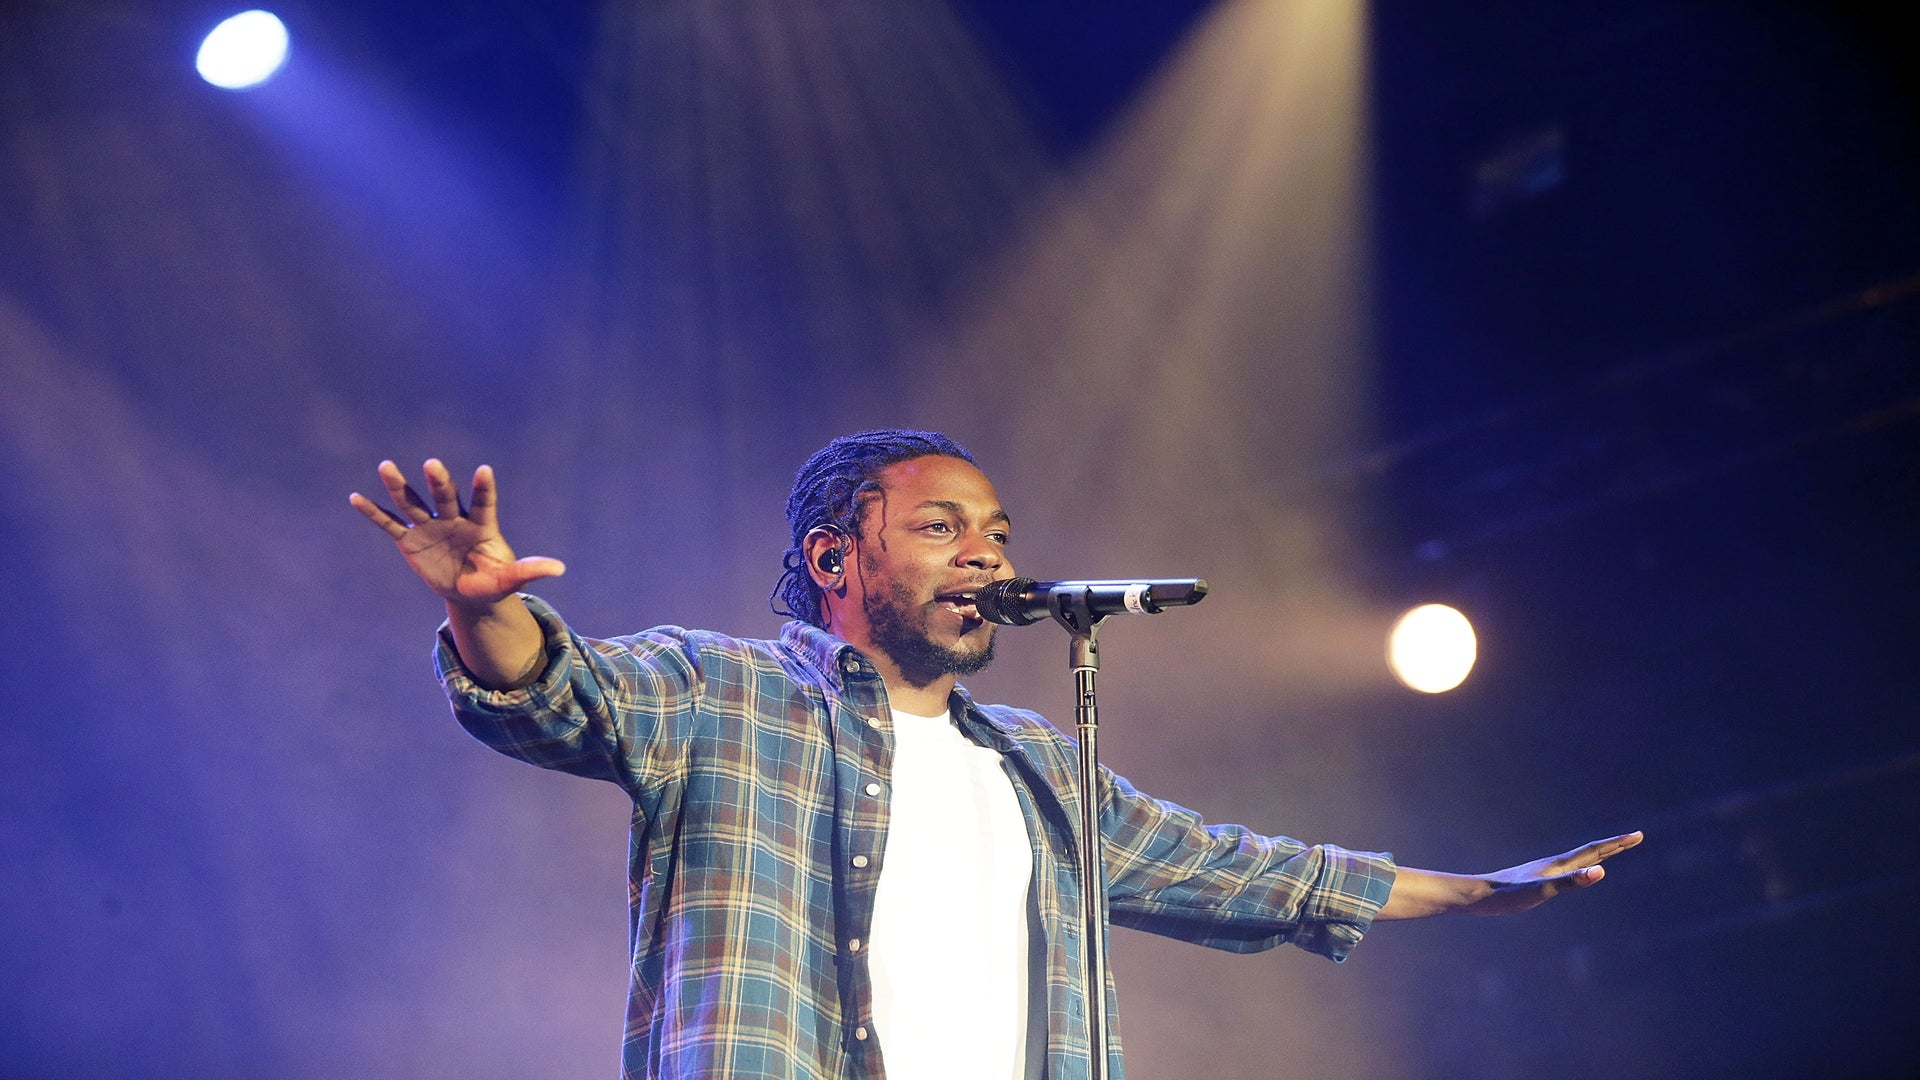 From Kendrick to Mariah, Our Weekly ESSENCE Fest Playlist Brings the Beats